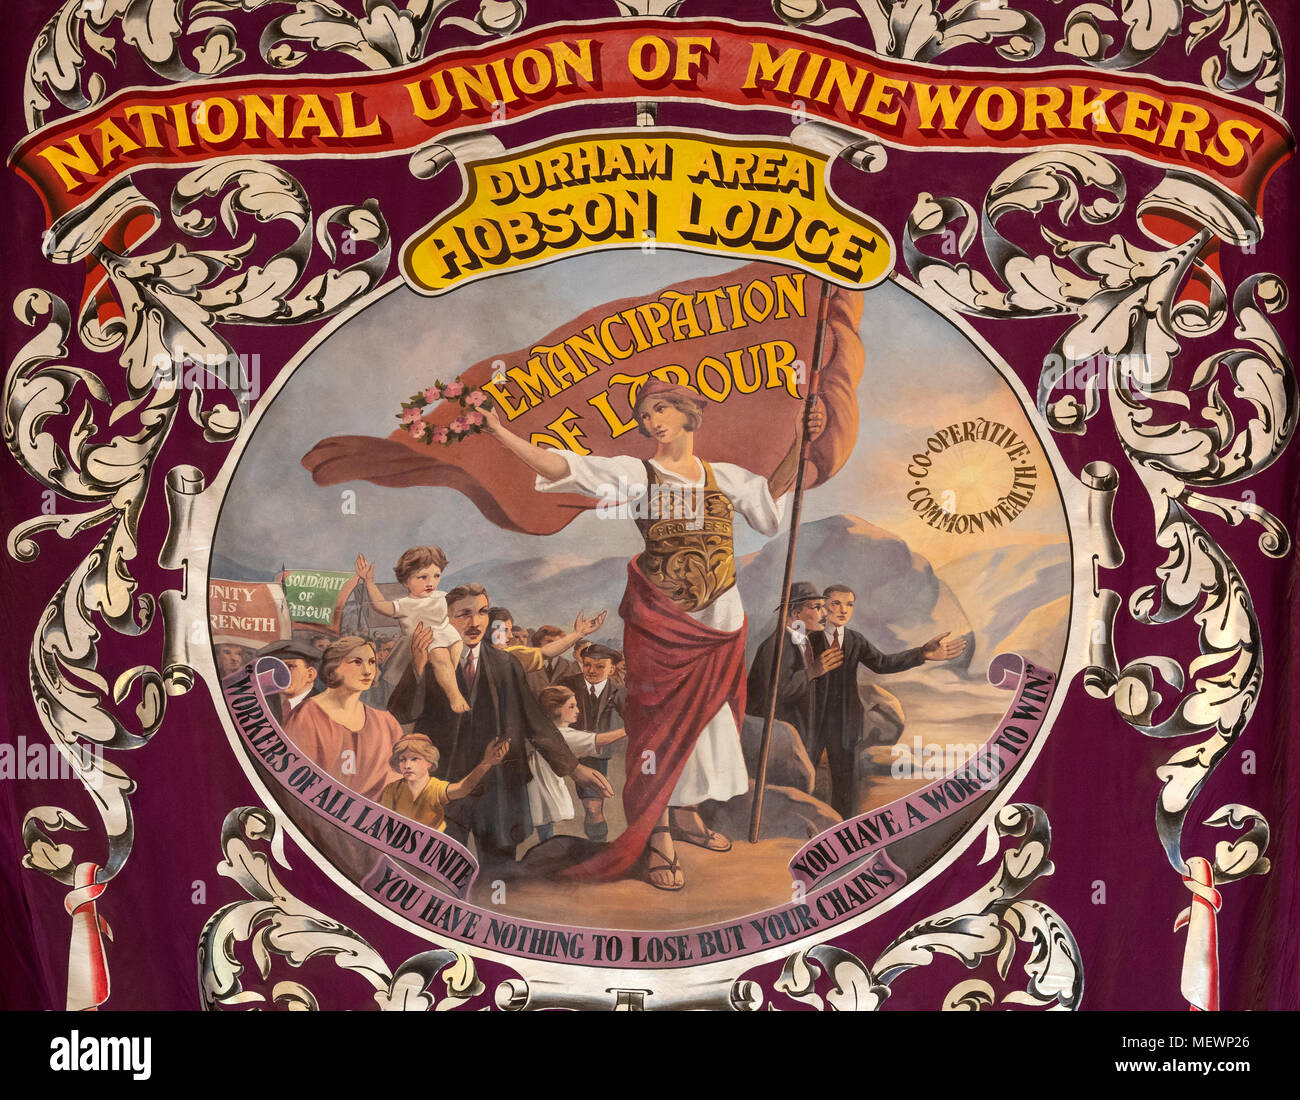 A banner of the National Union of Mineworkers - Emancipation of Labour - Northeast England. - Stock Image